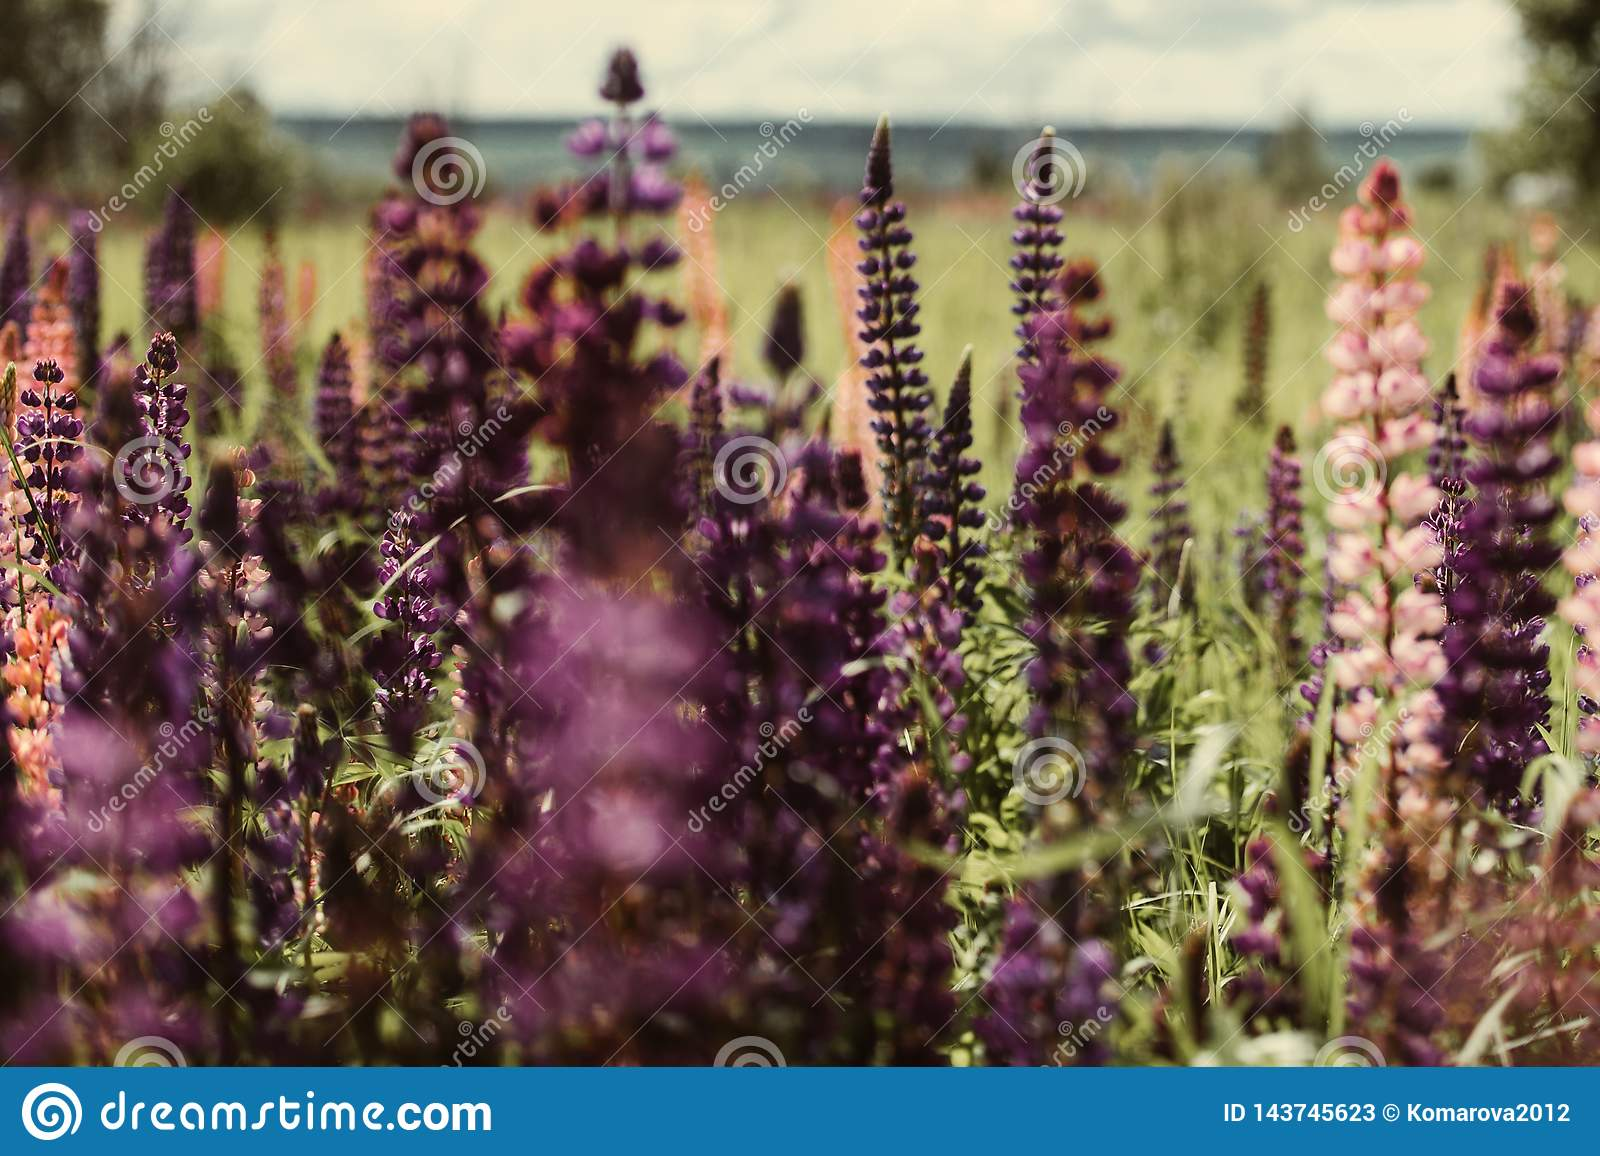 Blooming field of purple and pink lupines